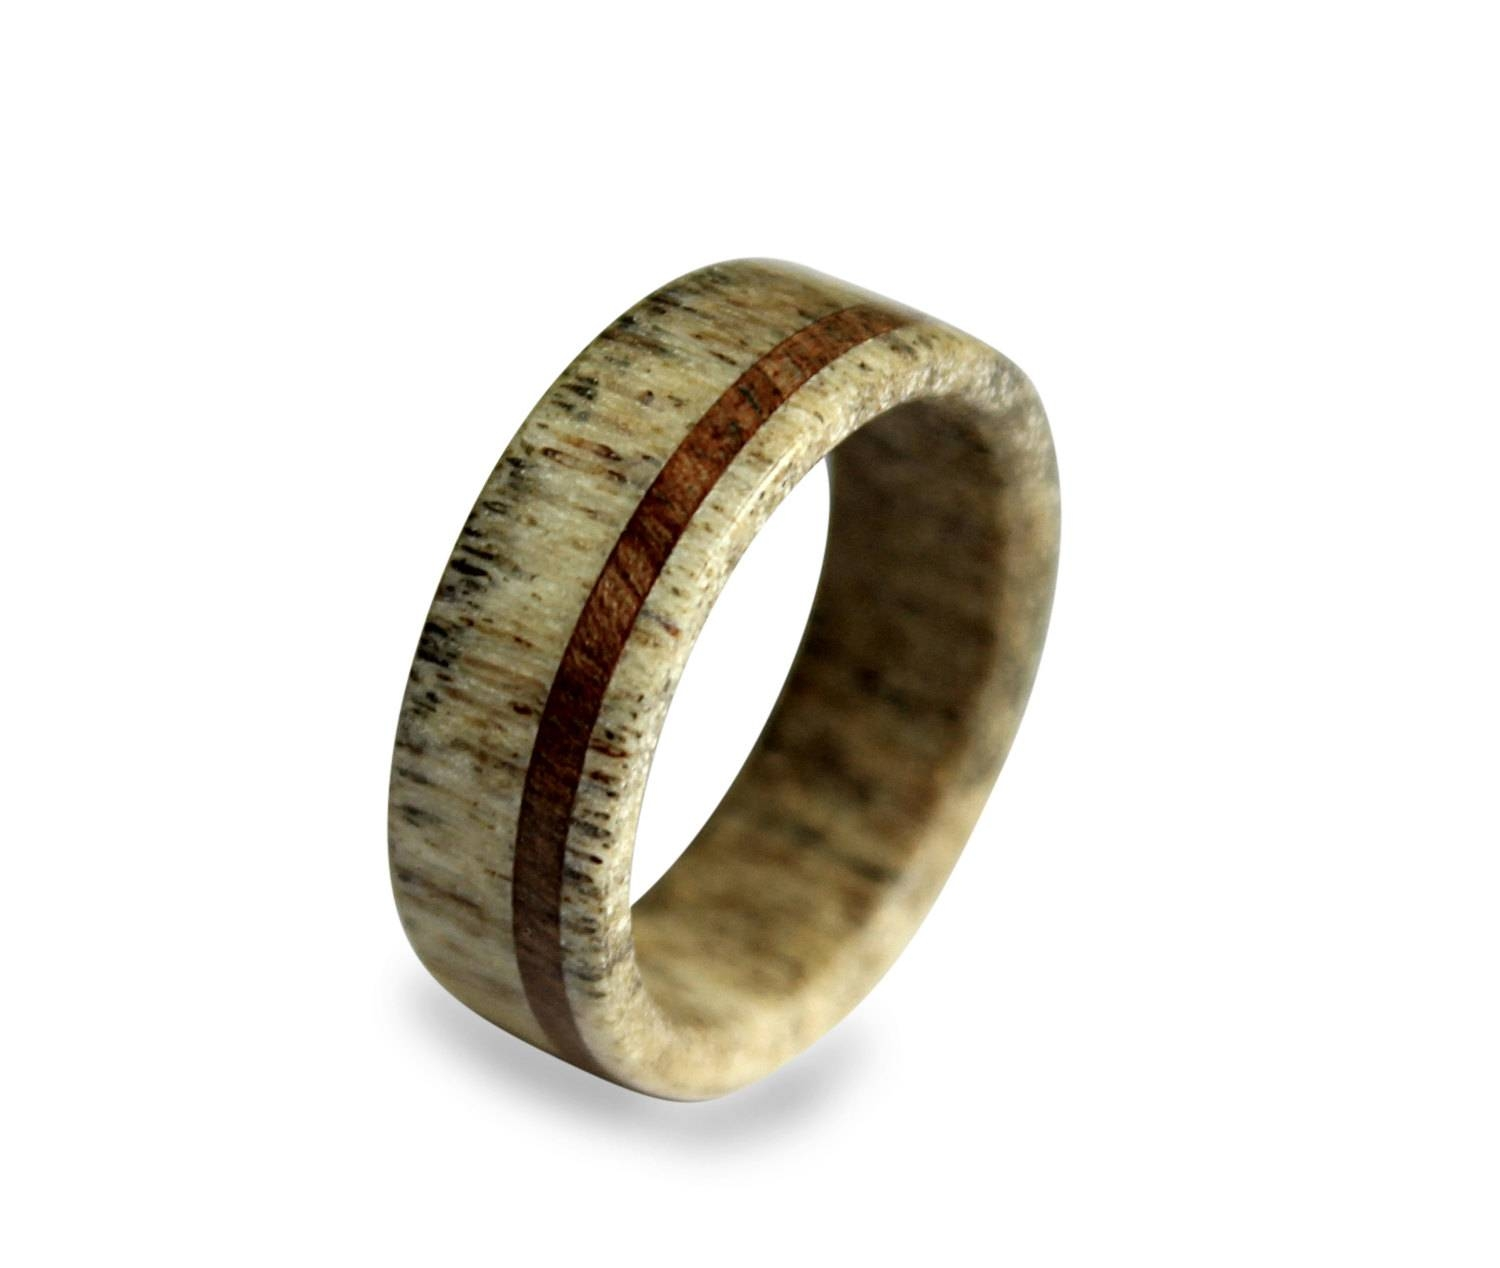 Handmade Deer Antler Ring Antler Ring Wooden Ring Antler Intended For Antler Engagement Rings (View 9 of 15)